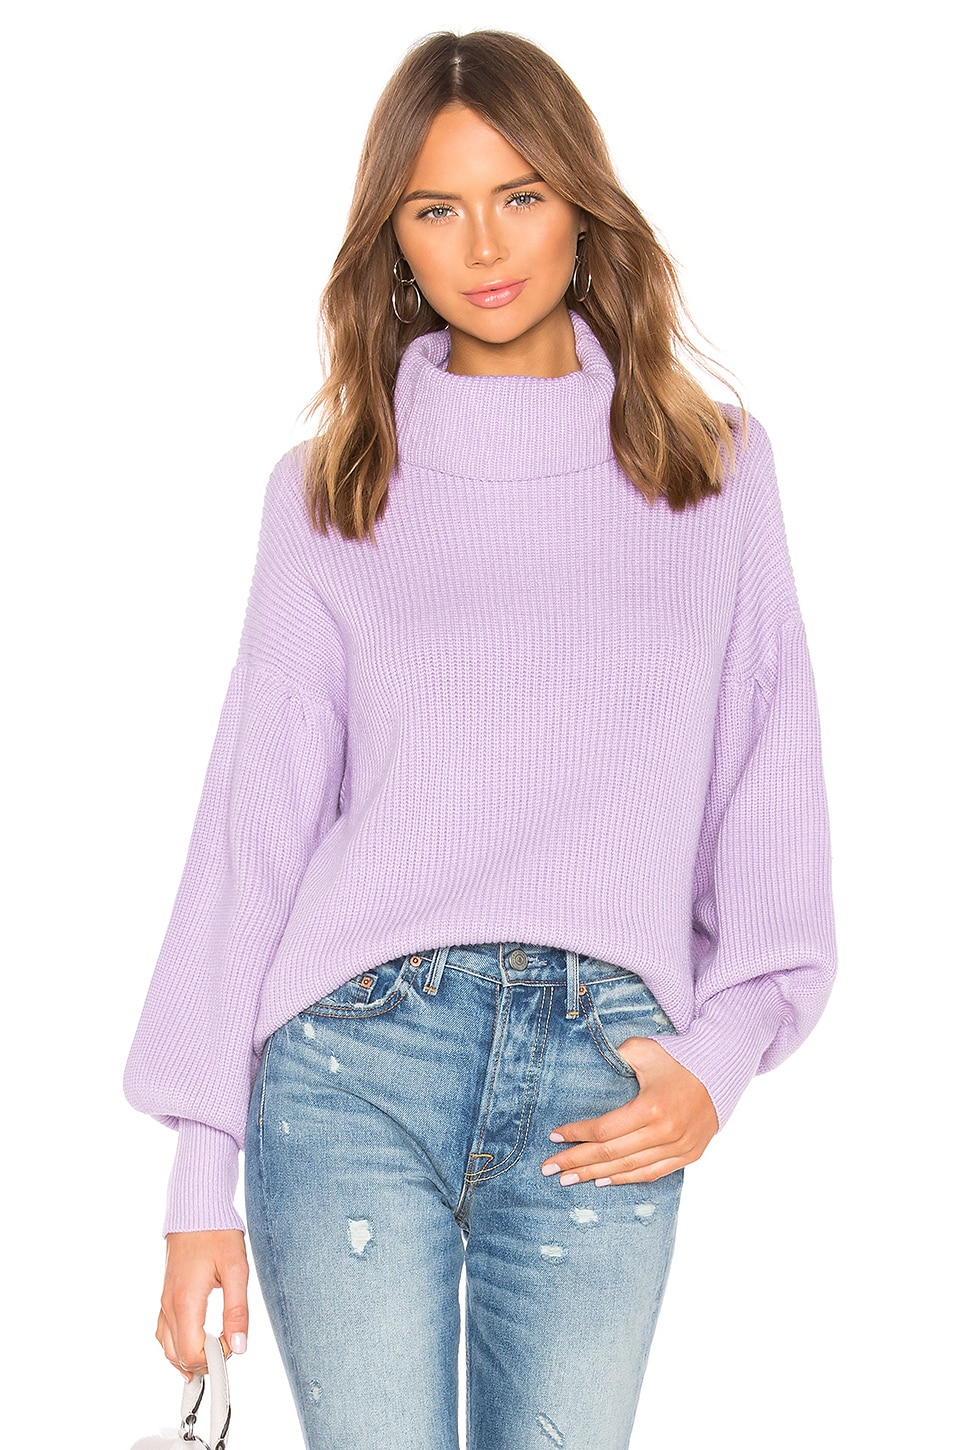 About Us Frankie Knit Sweater in Lavender